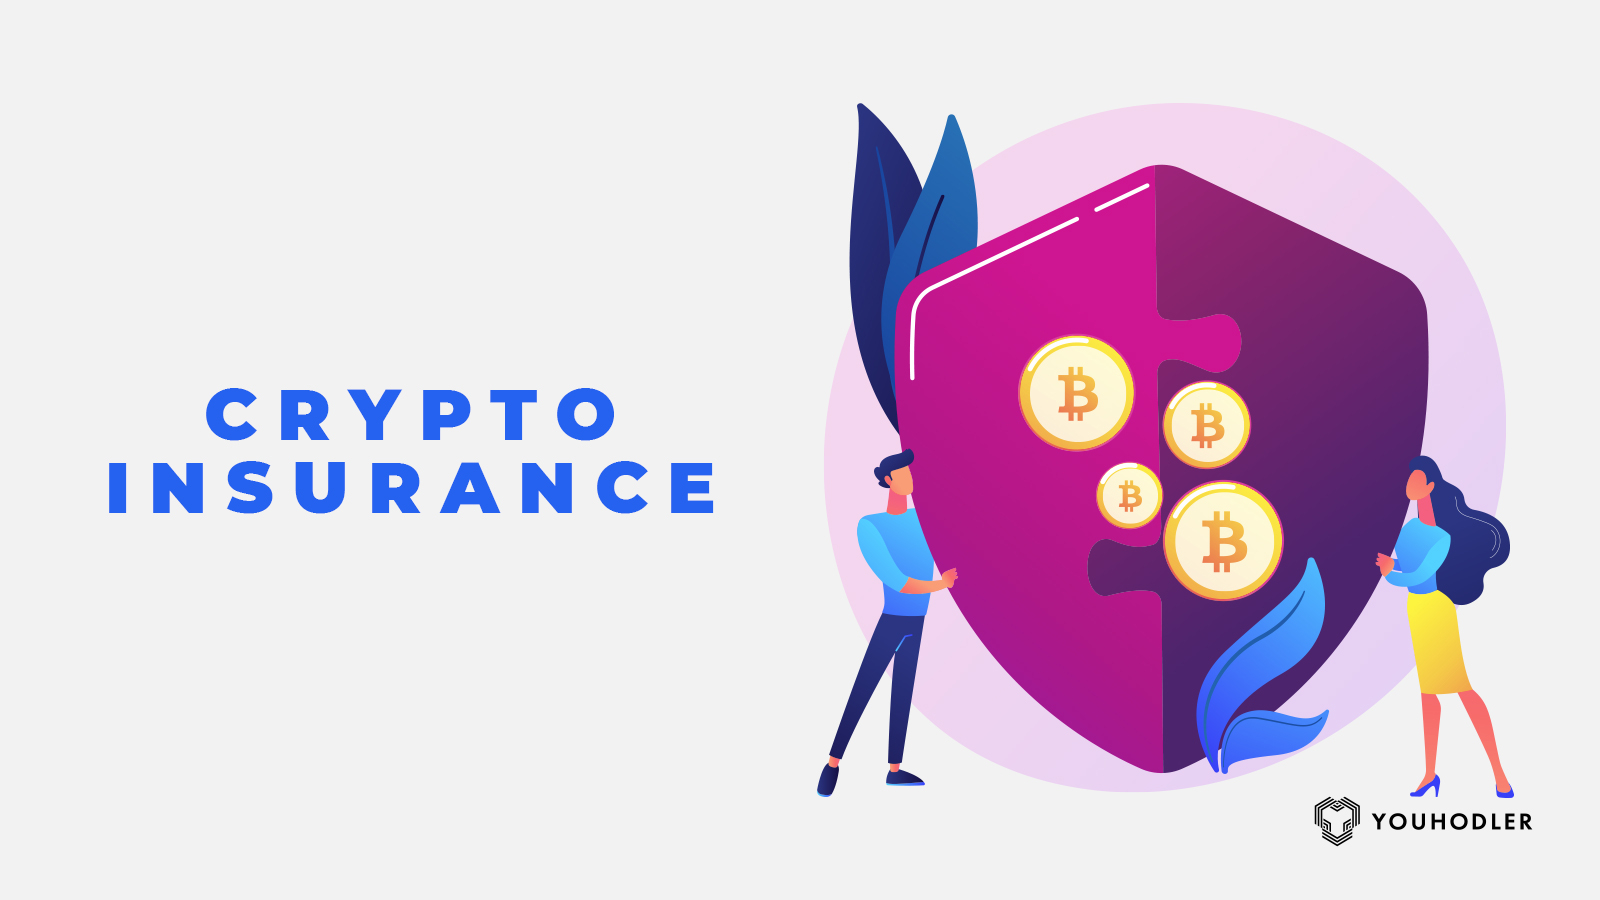 Two people holding up a shield signifying protection with crypto insurance.